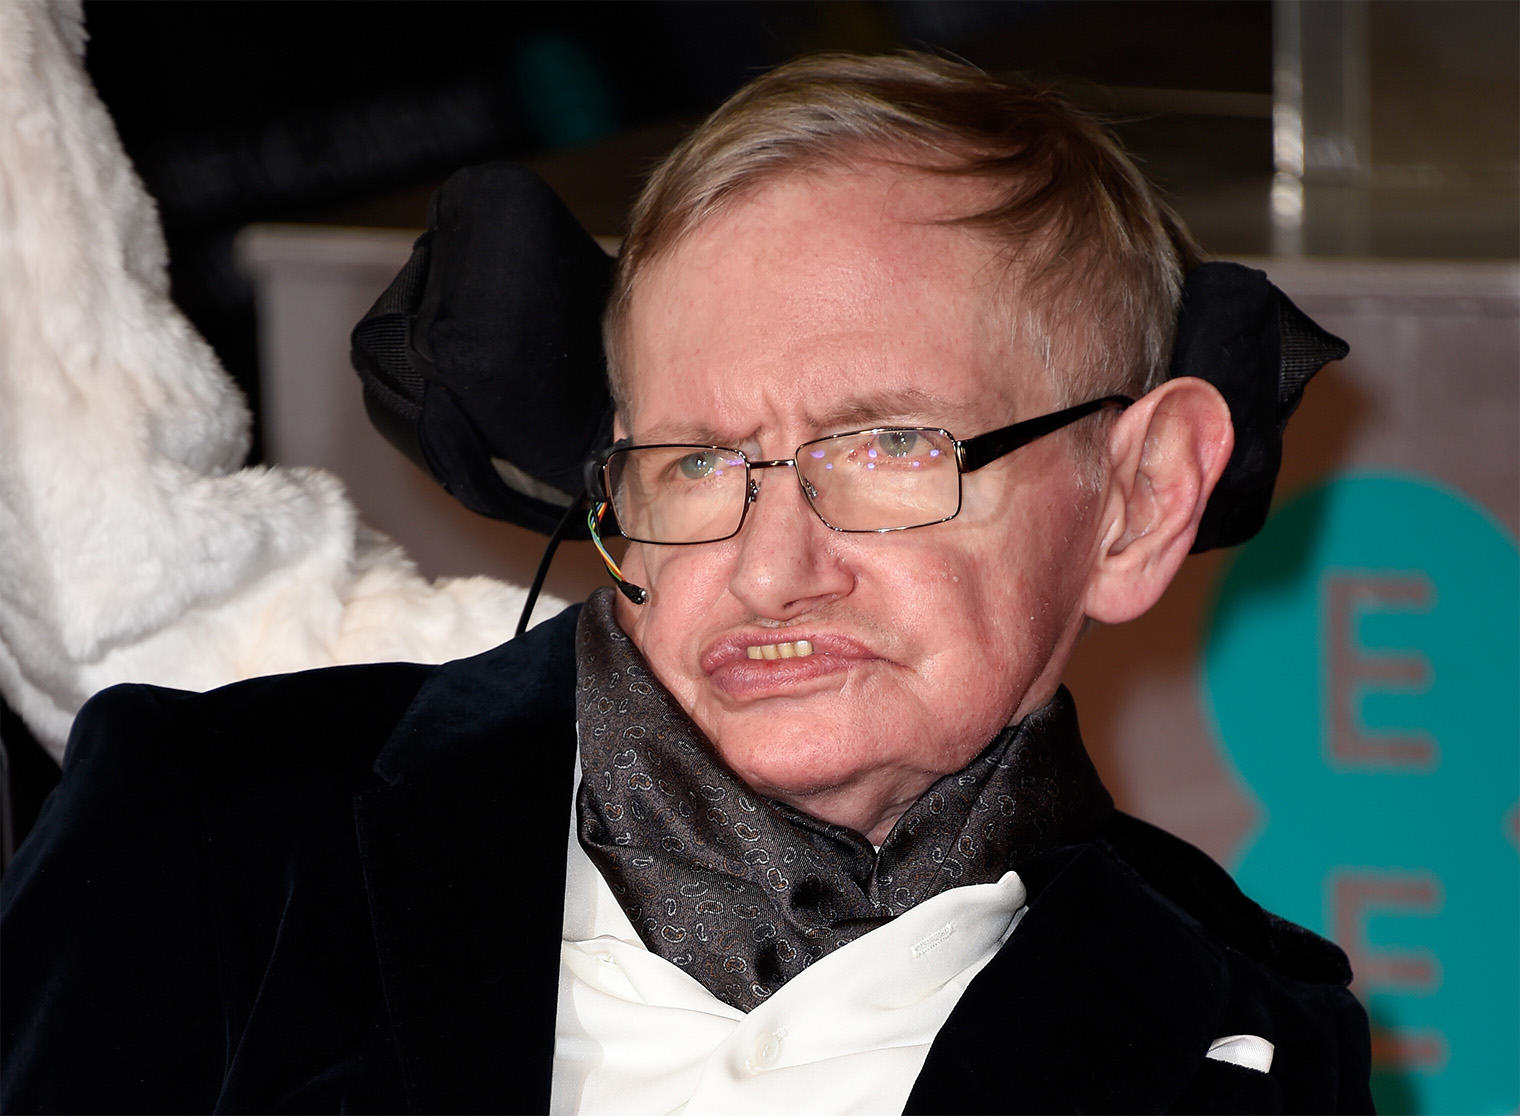 UNILAD hawking 314 Stephen Hawking Has A Pretty Grim Prediction For The Future Of Humanity